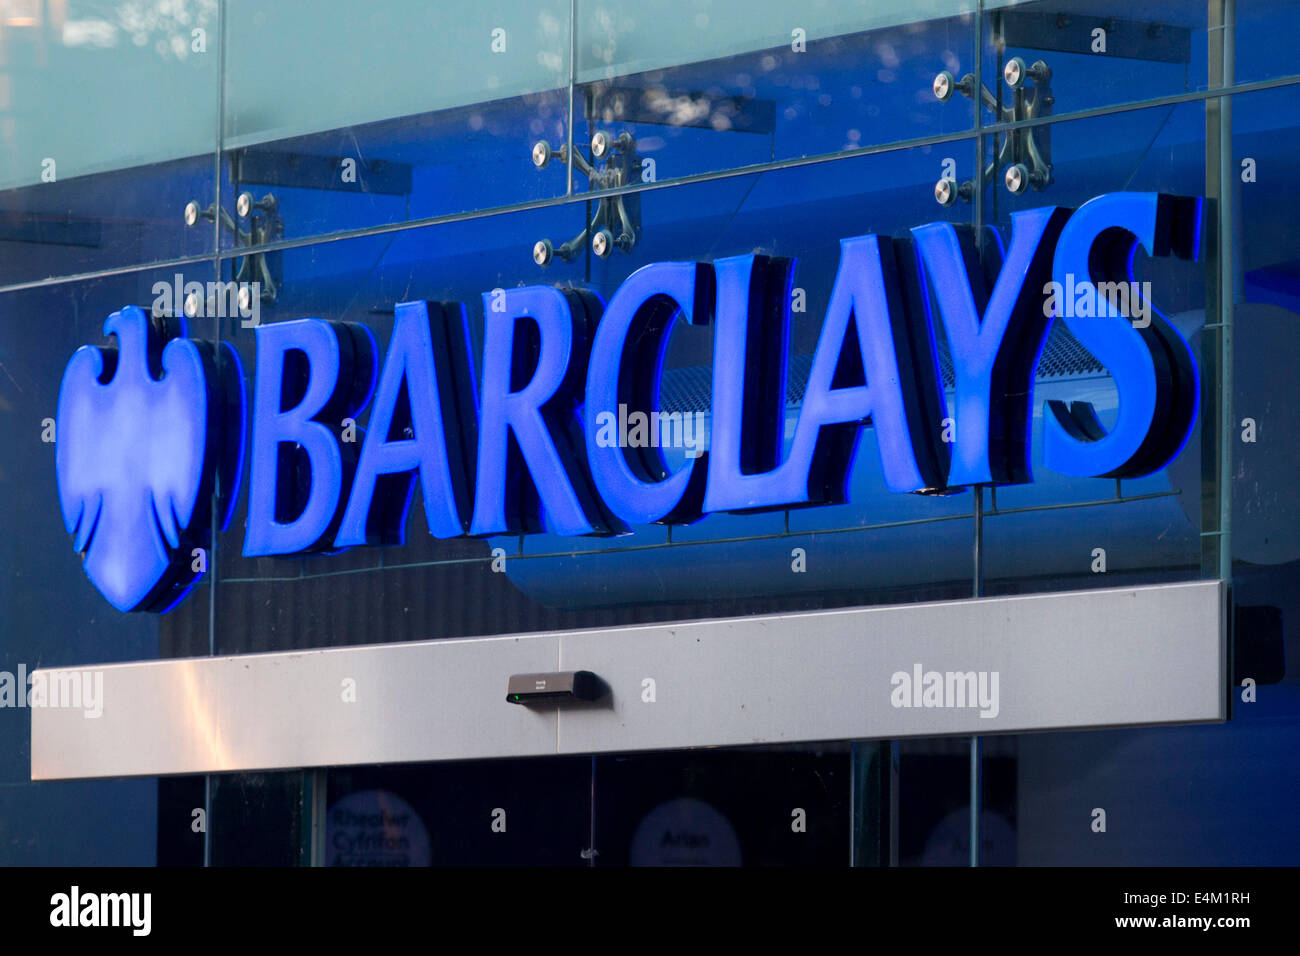 Barclays bank sign Stock Photo